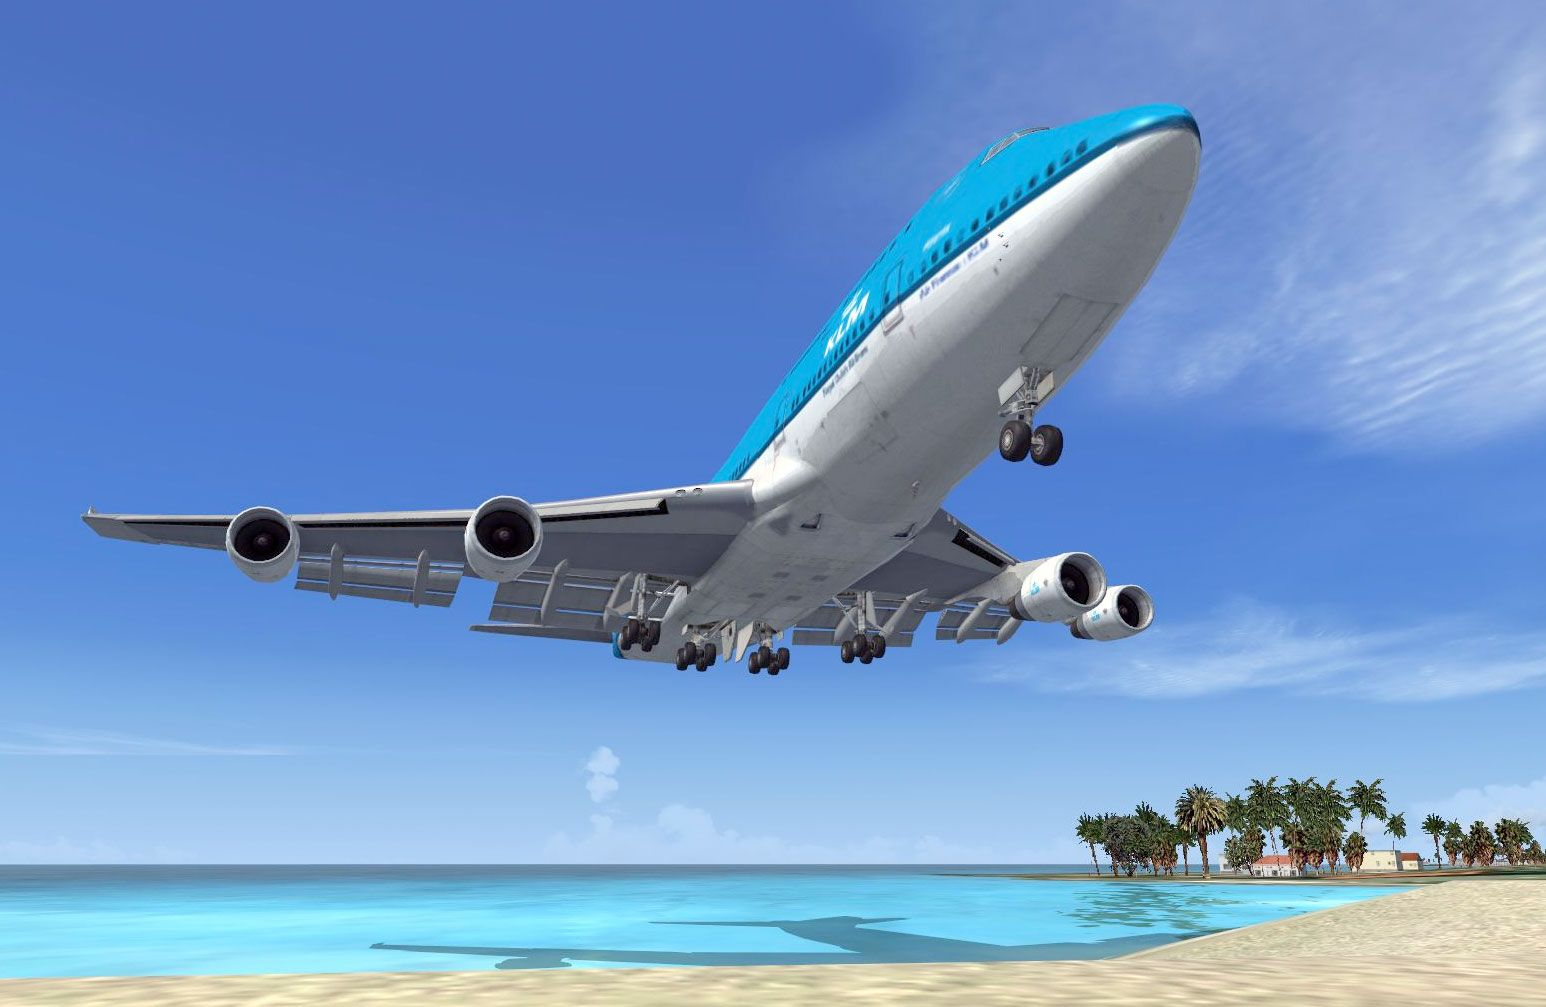 A Boeing 747 landing at the famous St Maarten airport